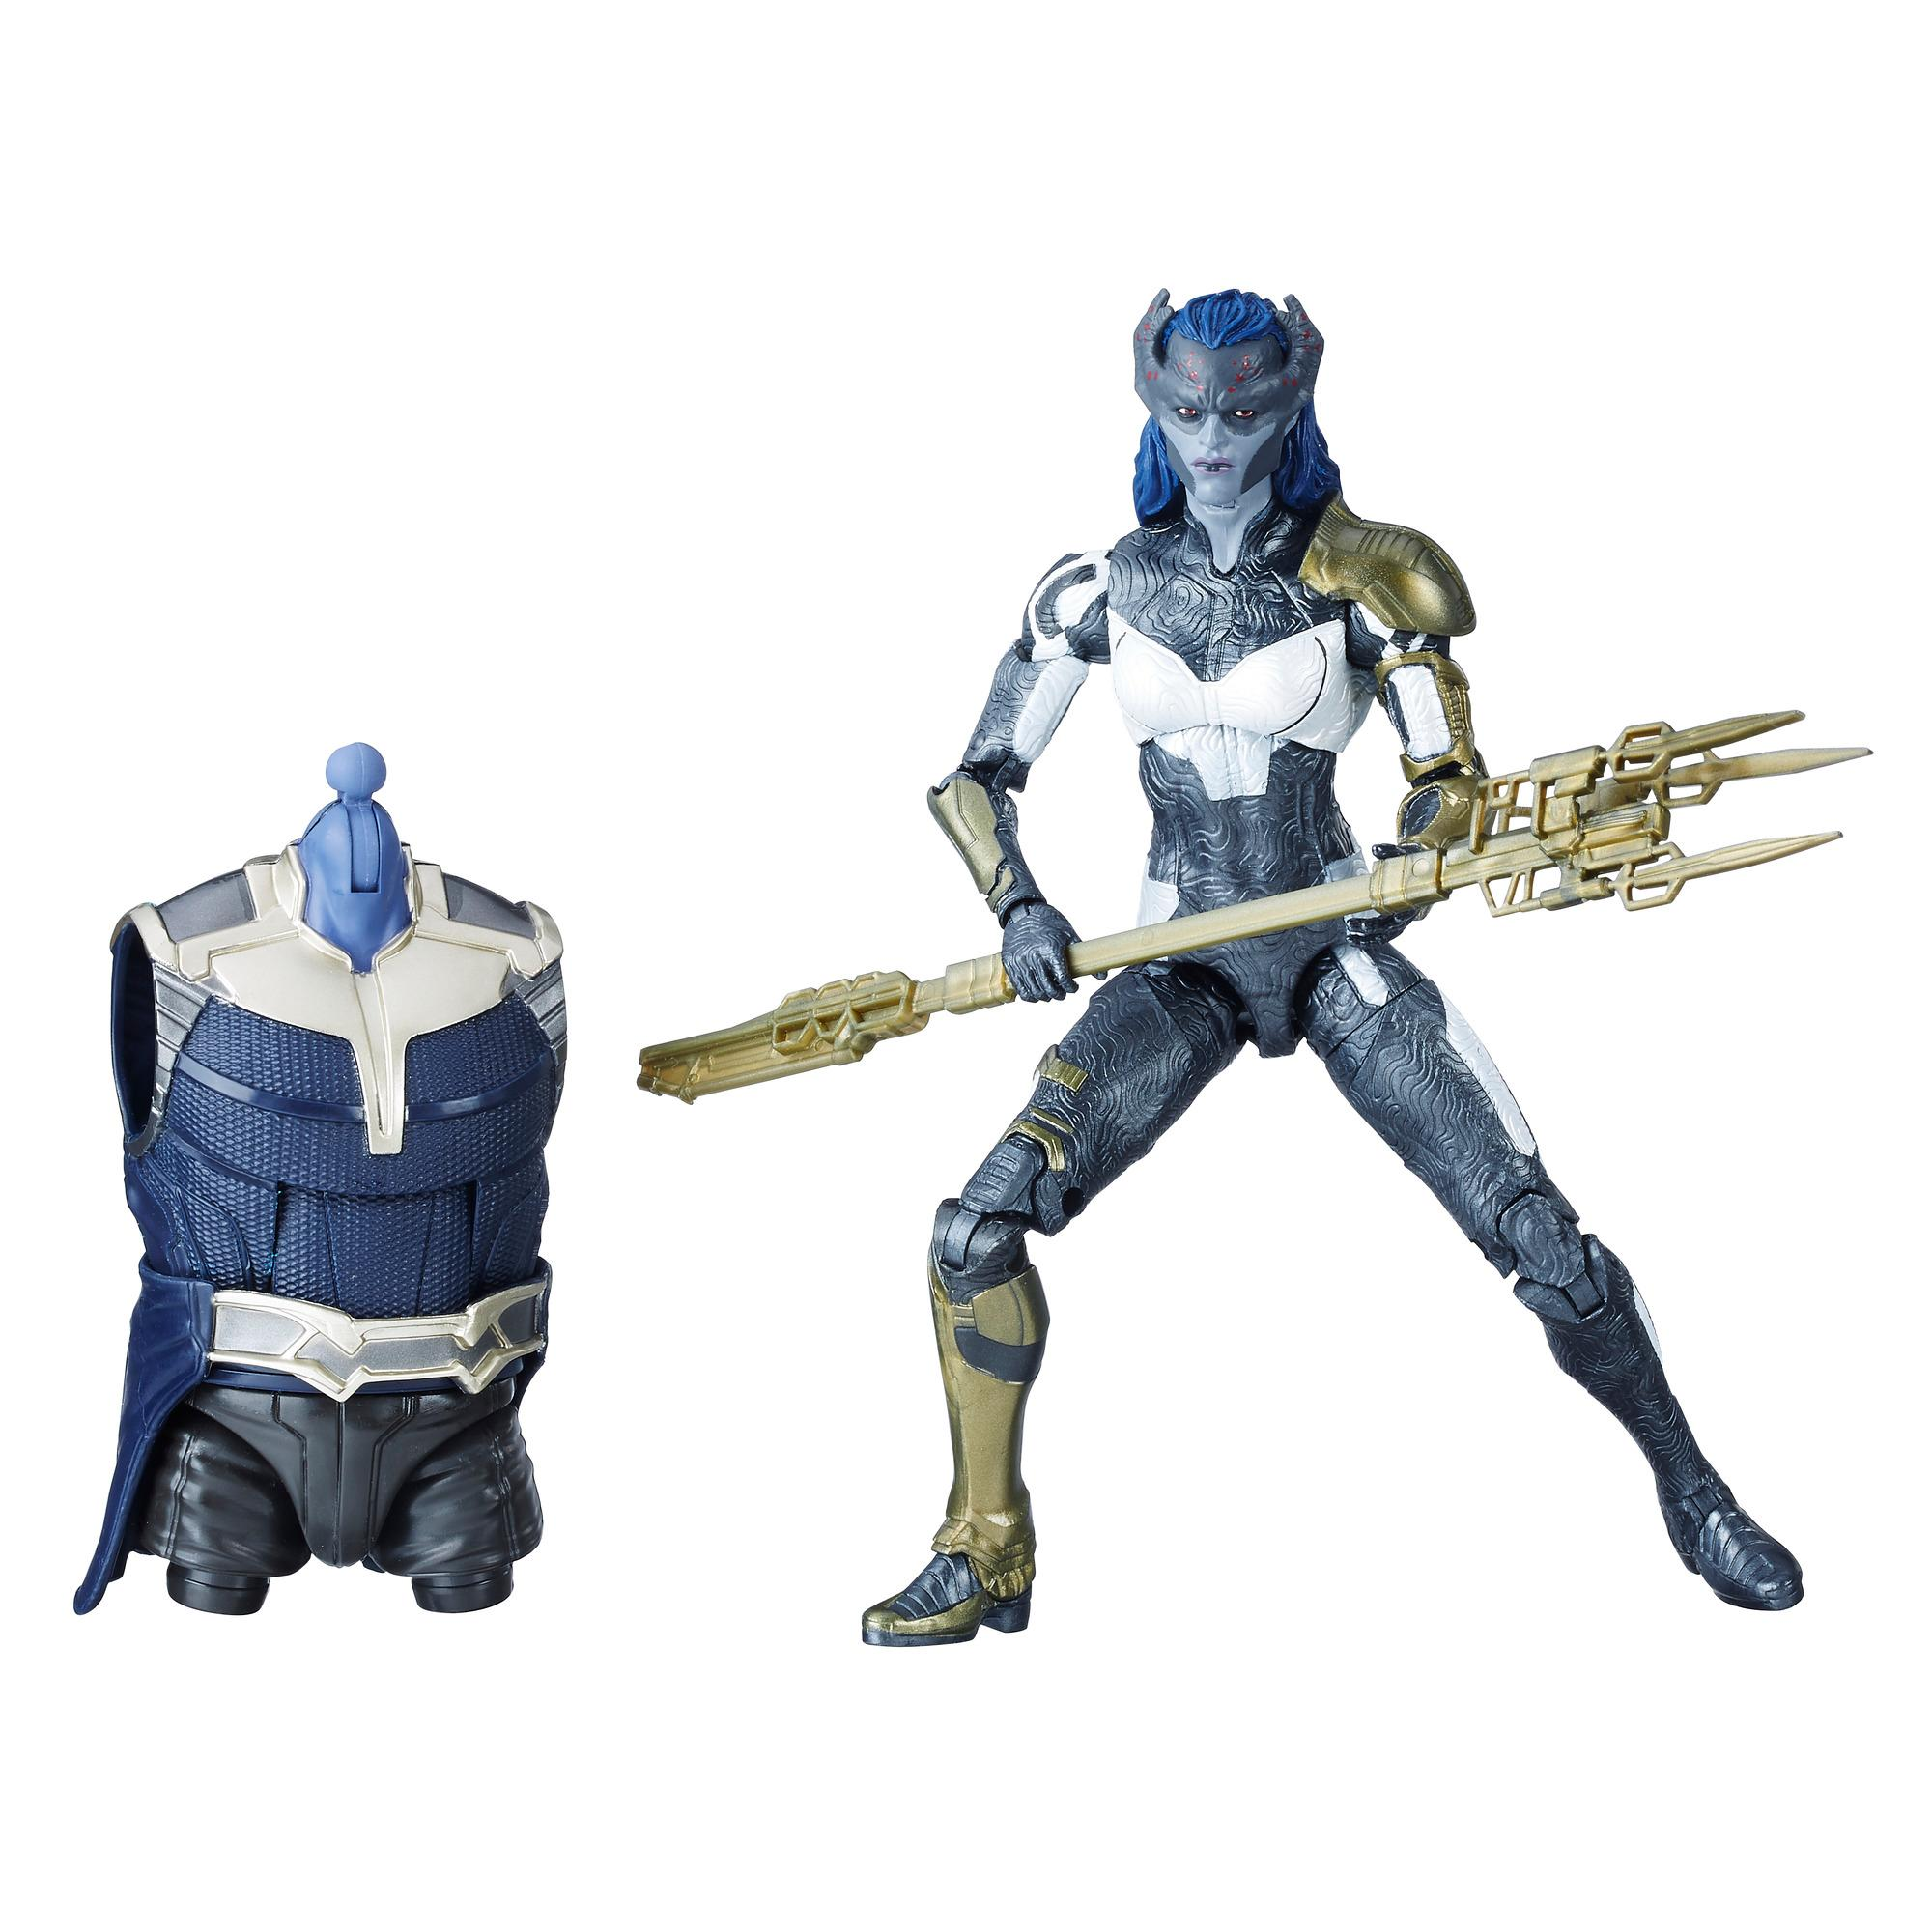 Avengers Marvel Legends Series 6-inch Proxima Midnight